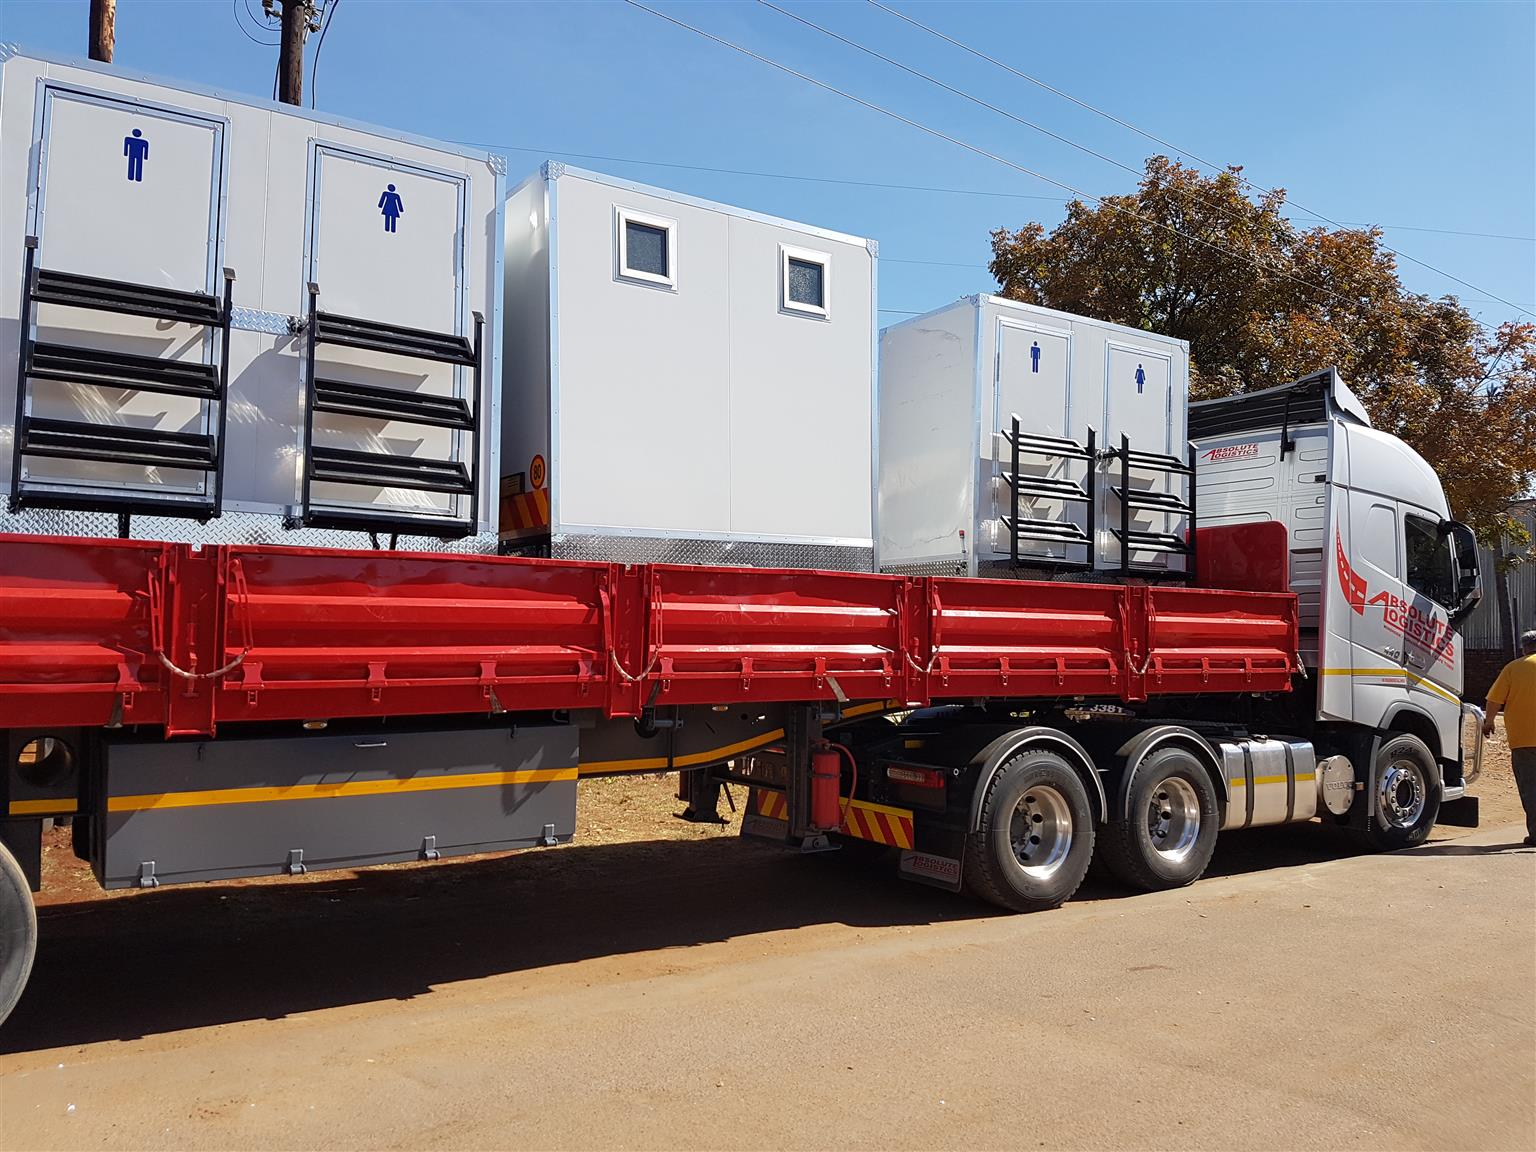 Mobile toilets do it yourself kits flat pack r39 89999 junk mail mobile toilets do it yourself kits flat pack r39 89999 solutioingenieria Images